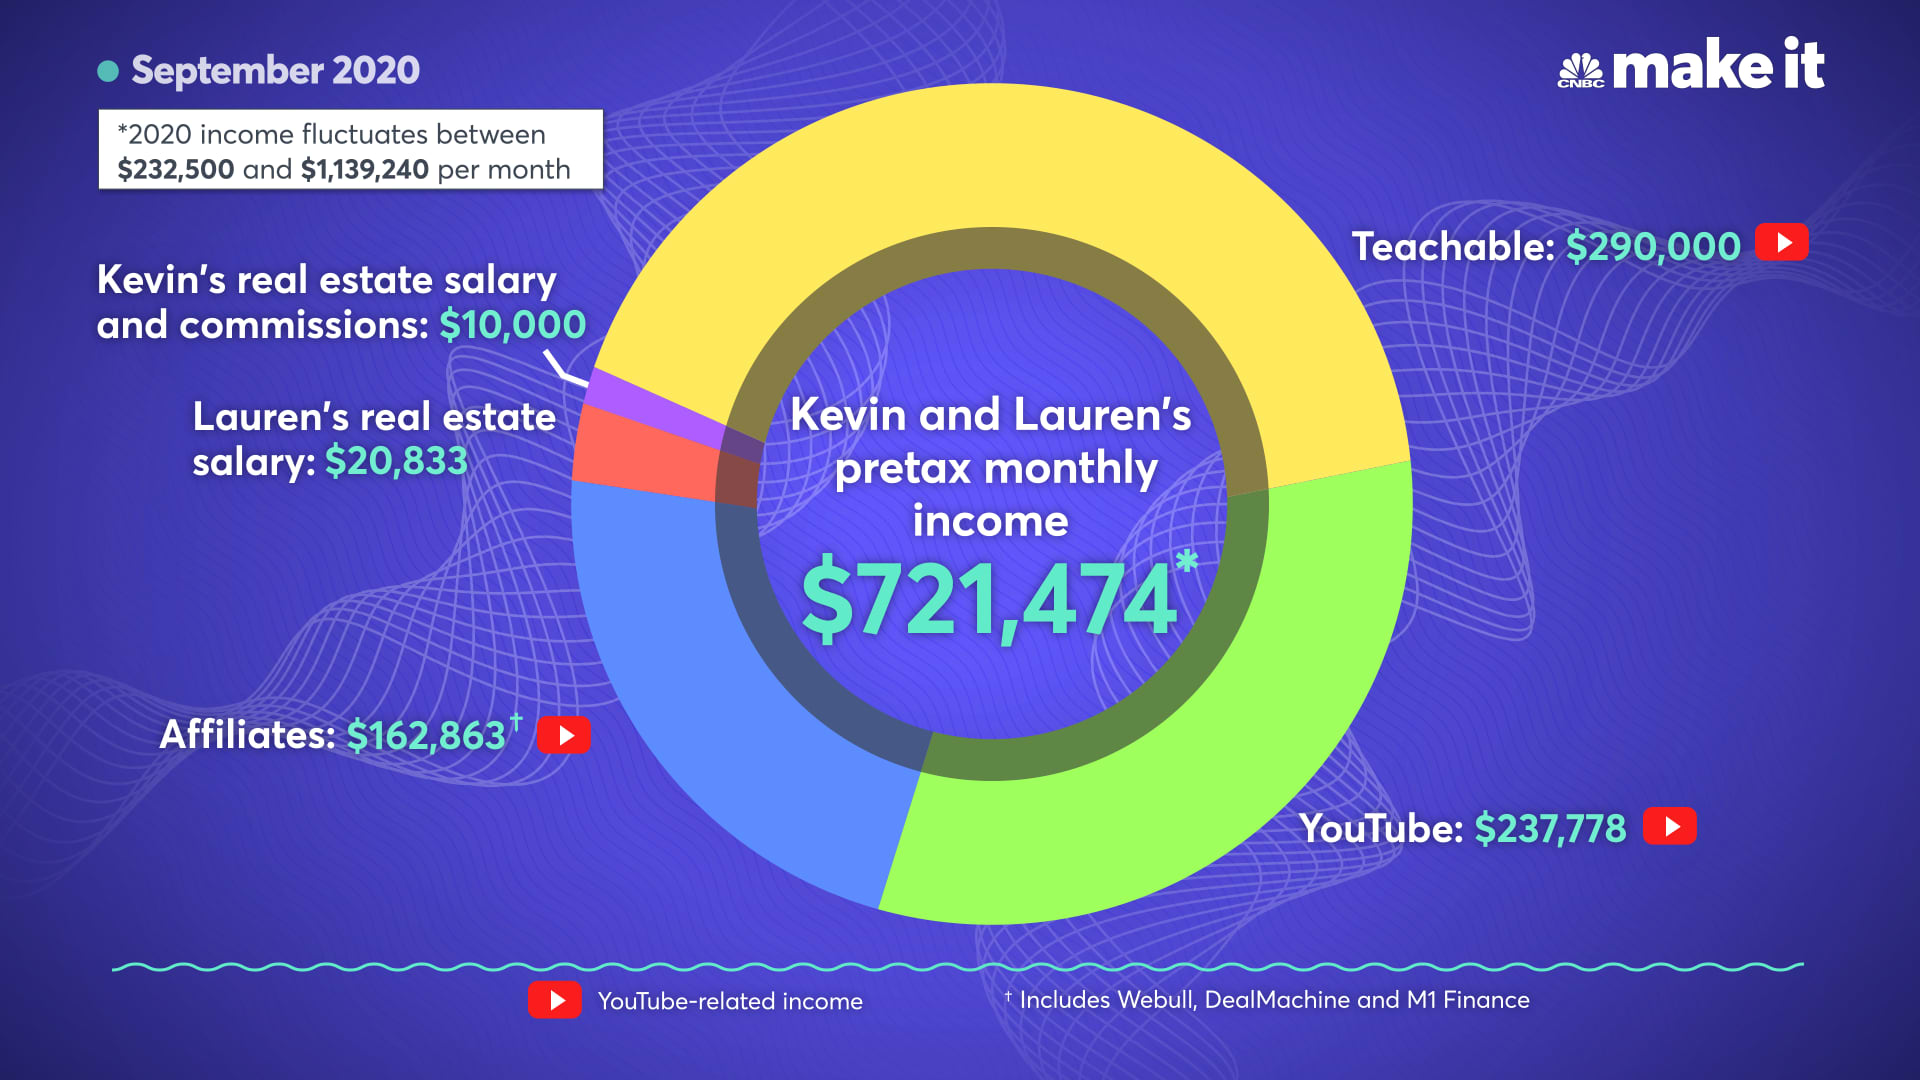 Kevin and Lauren Paffrath's pretax monthly income for September 2020.